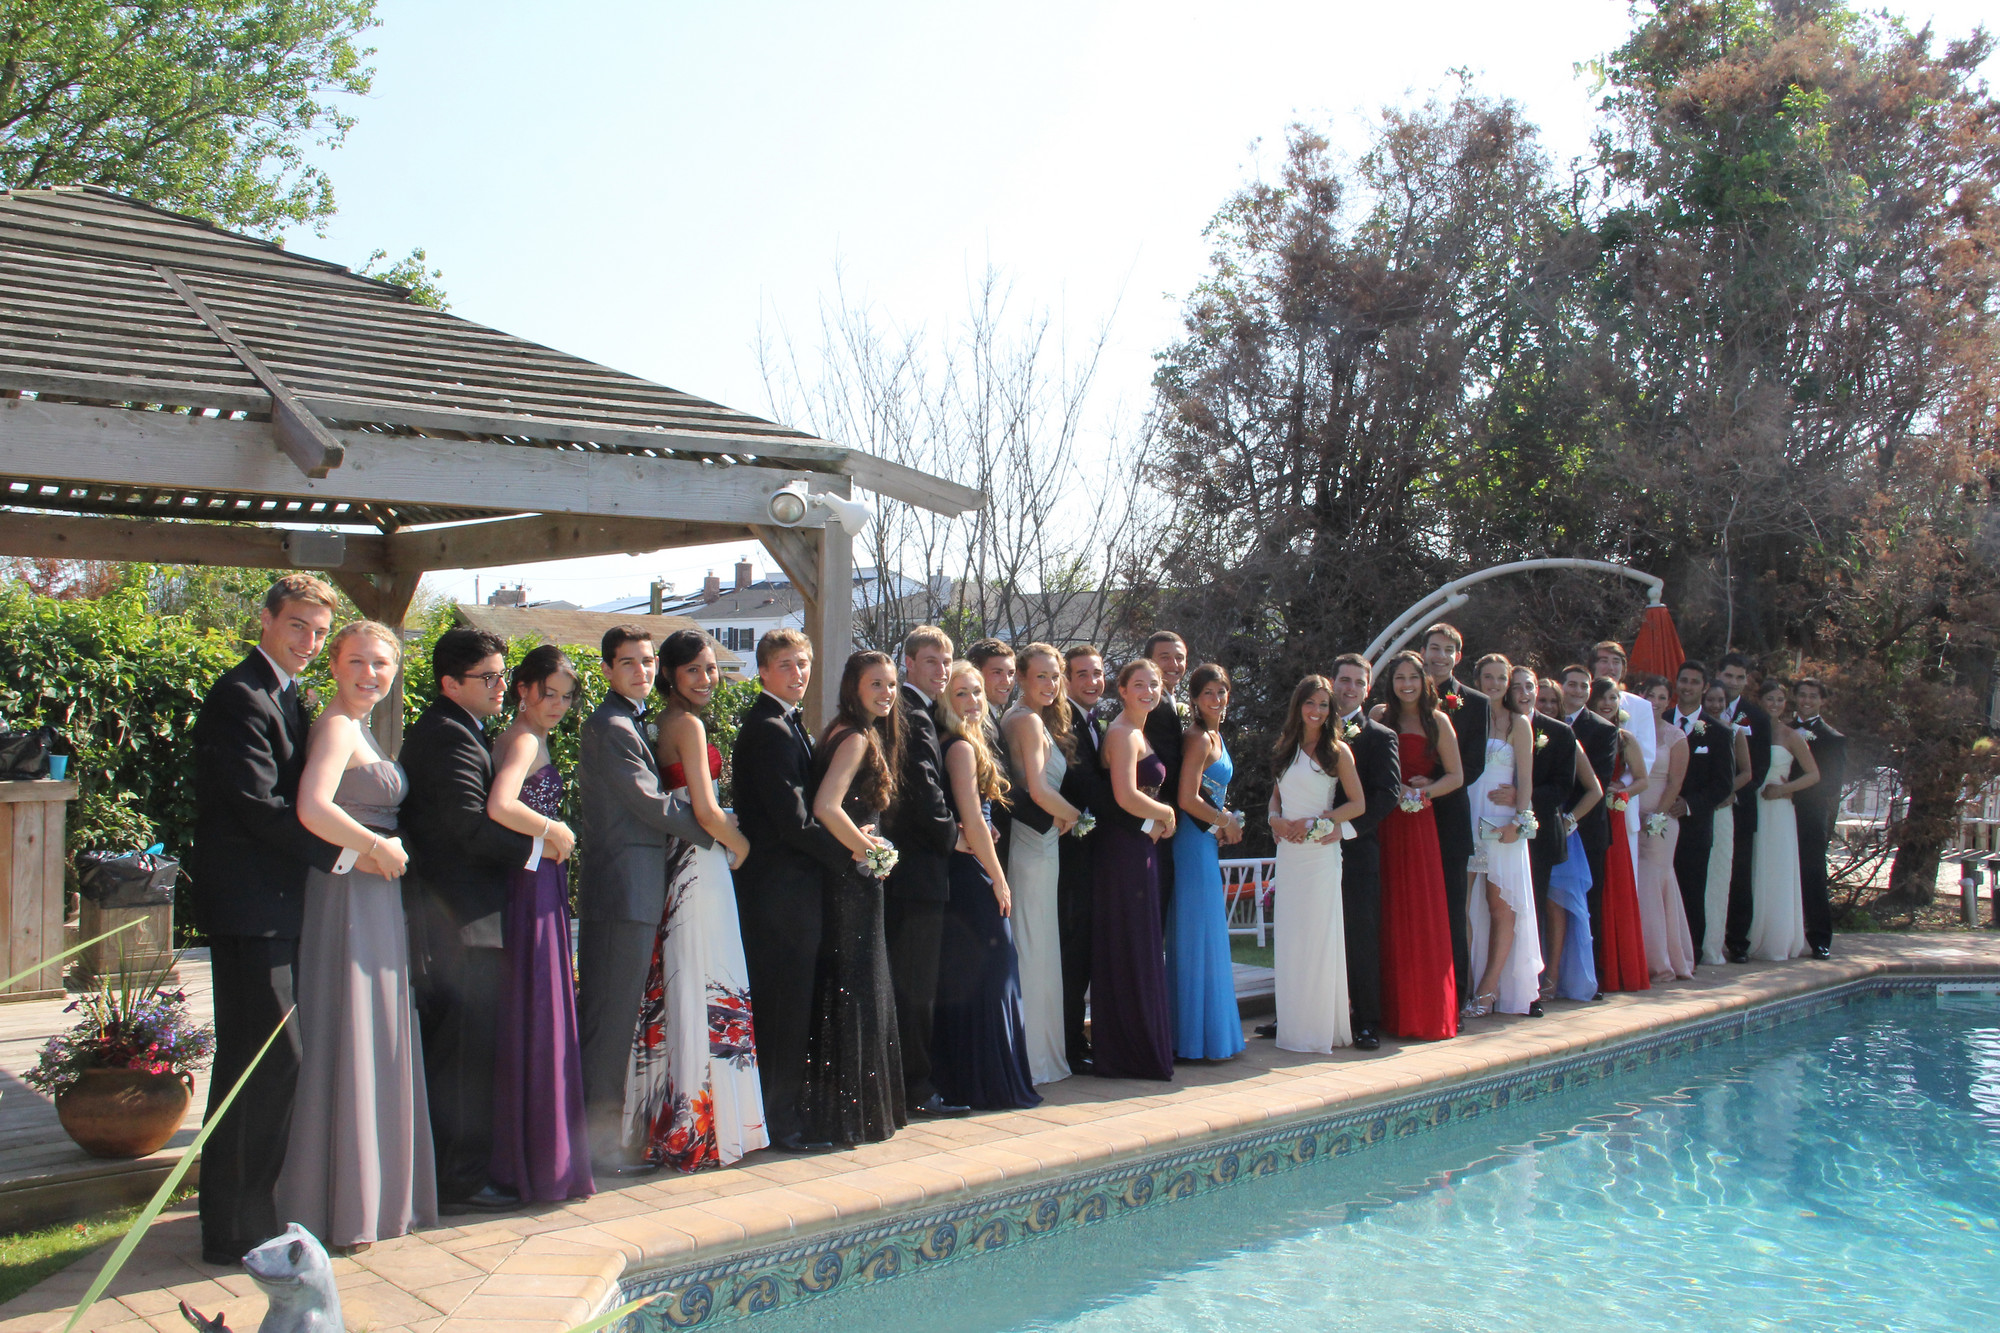 The group lined up by the pool so parents and friends could take photos. About 120 people attended a pre-prom party hosted by LBHS parent Bonnie Goetz.